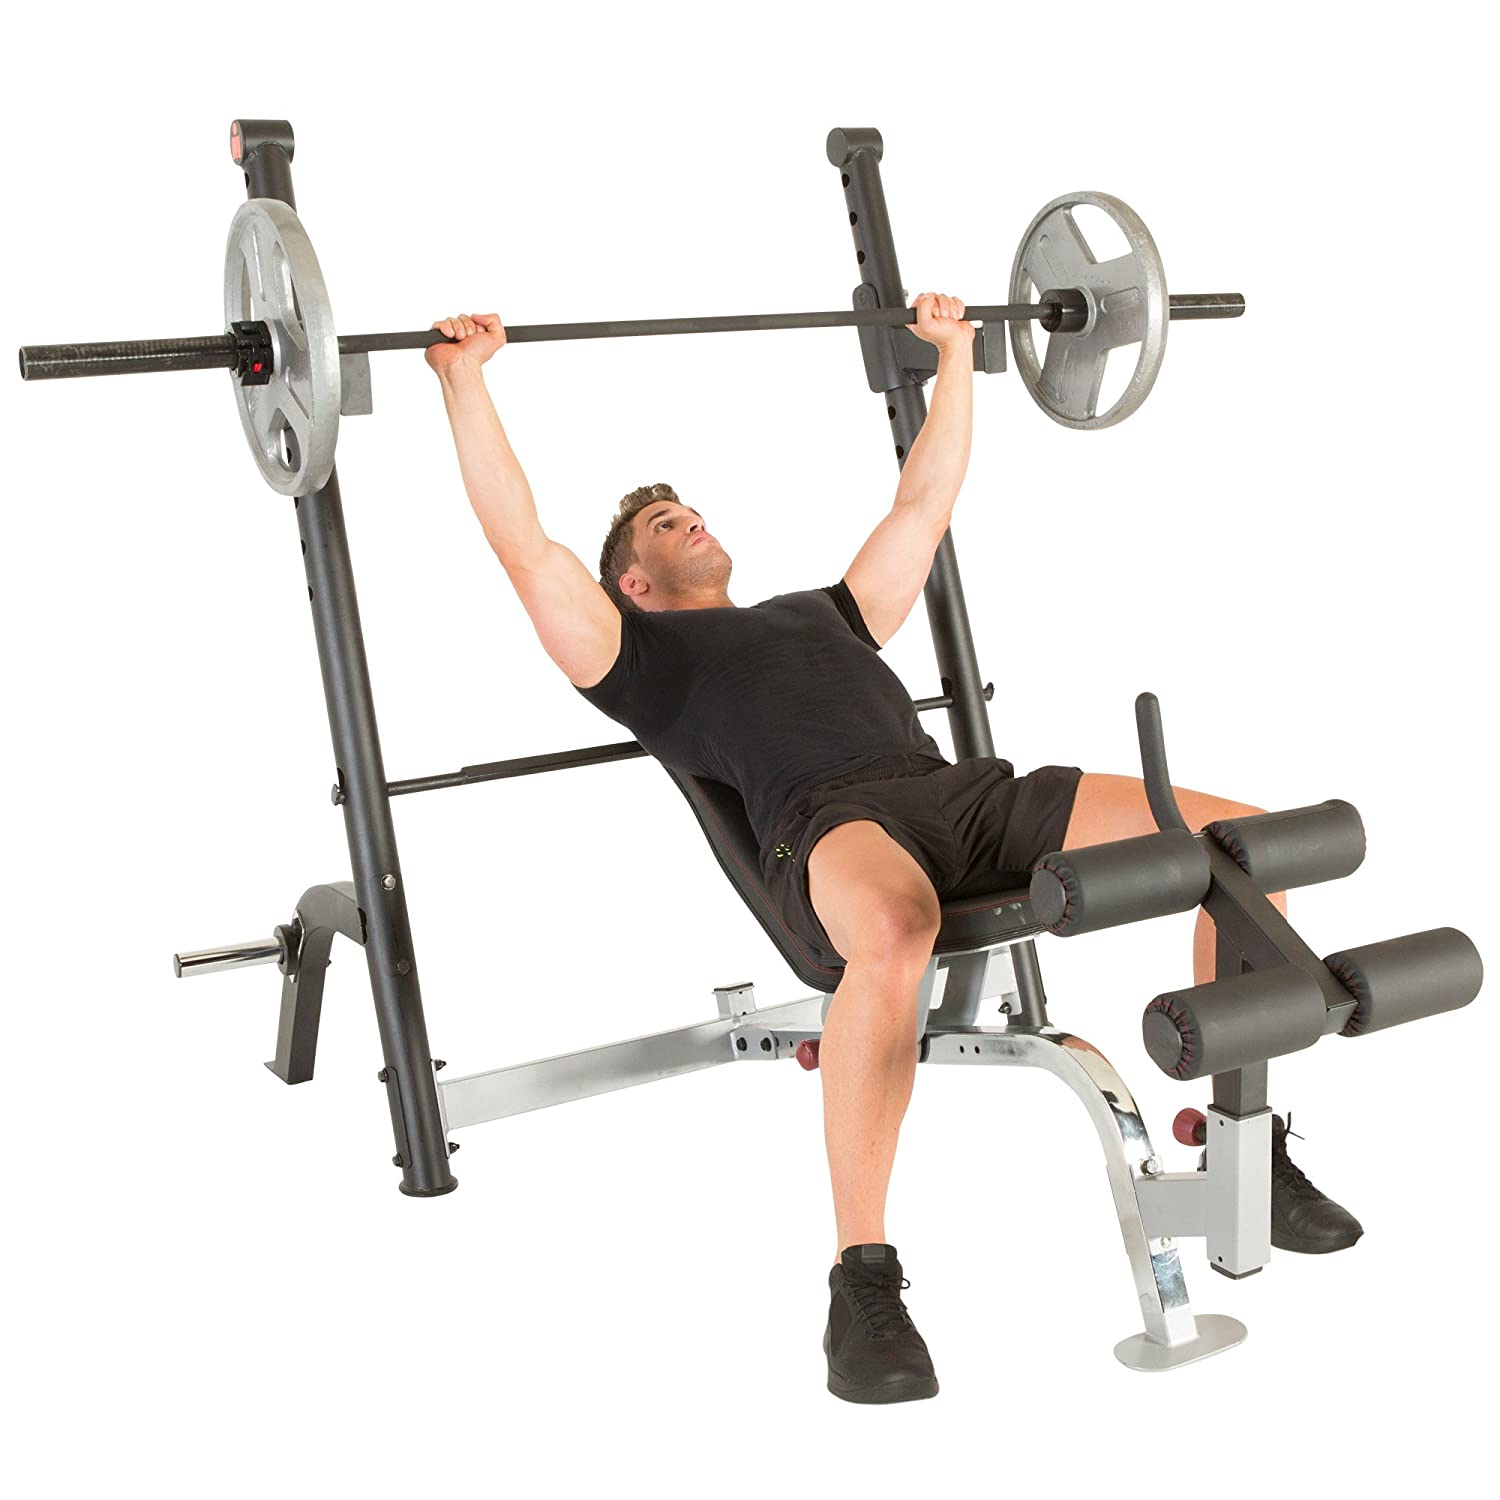 weight bench diy guide reality compressor for handpicked olympic gym home best bar fitness